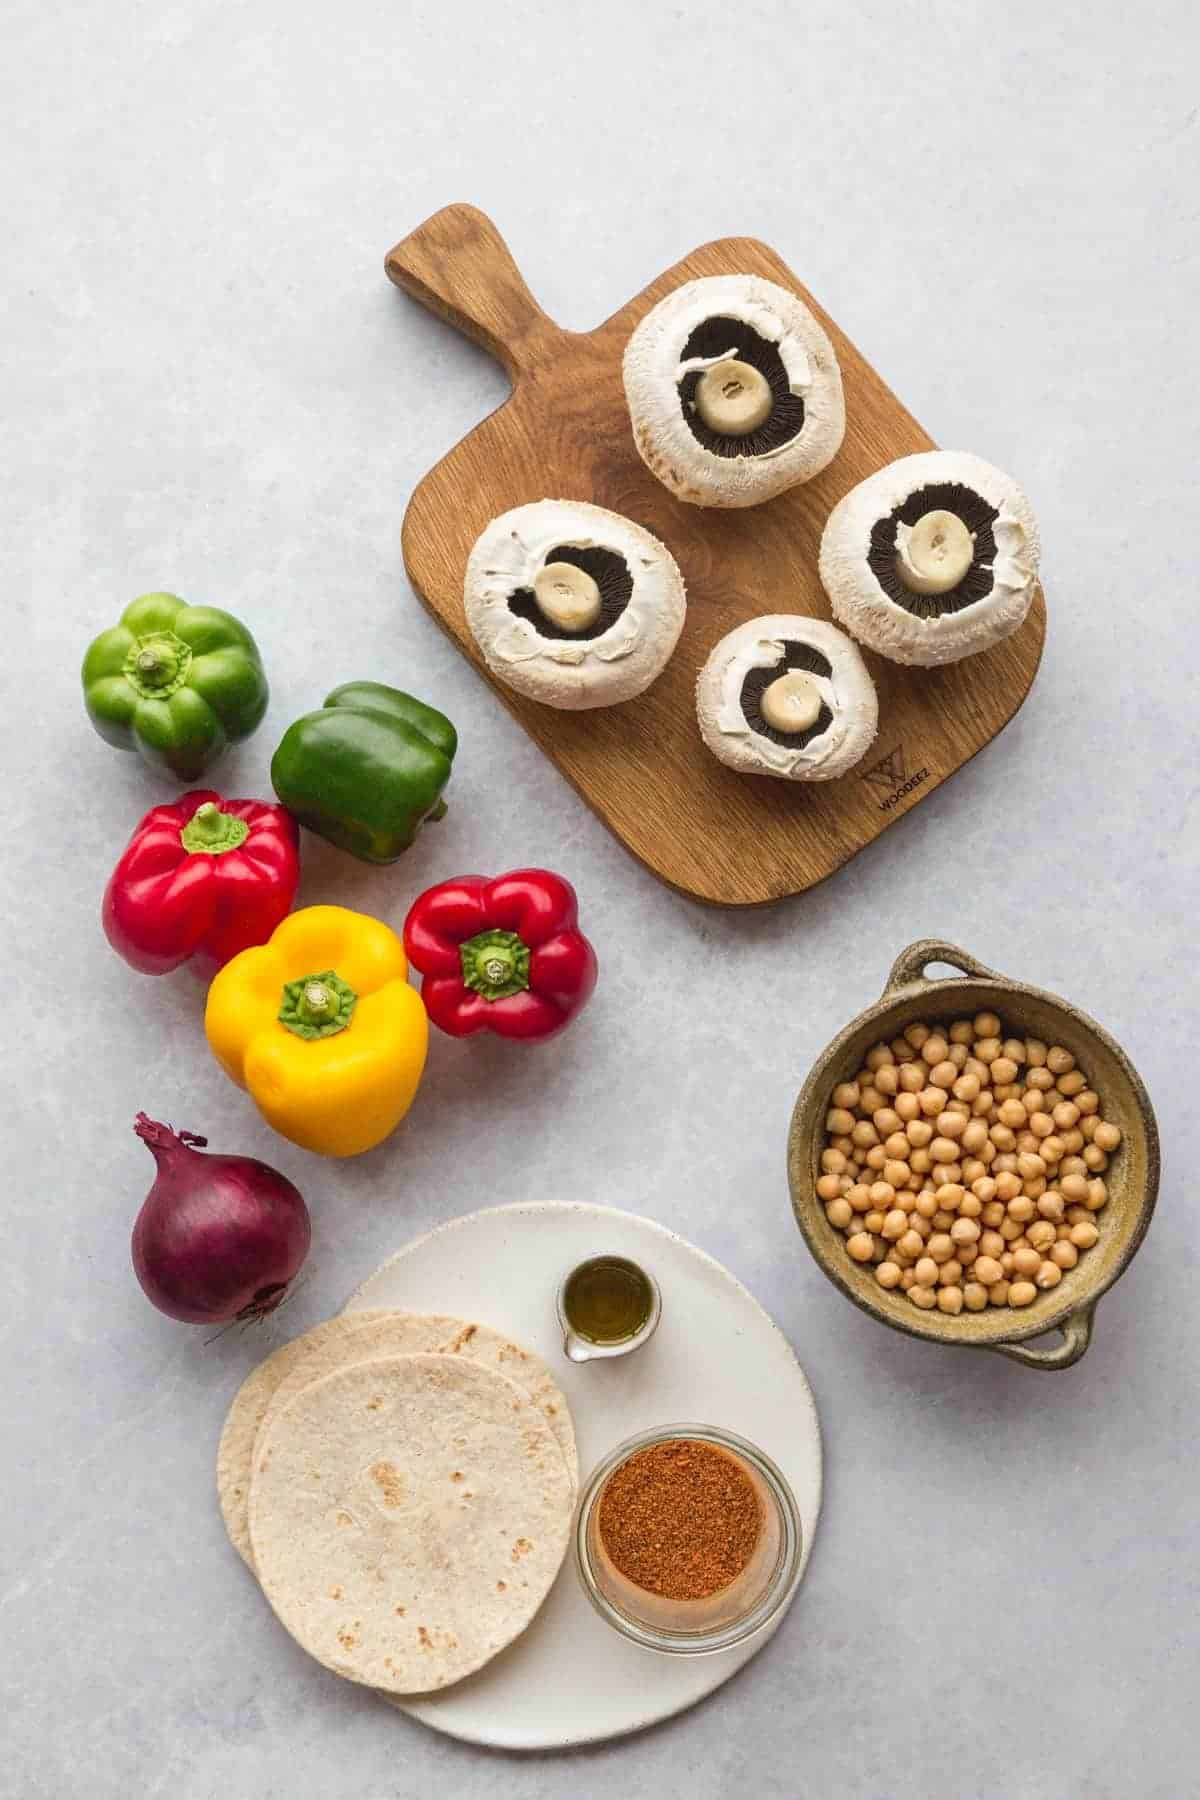 Chickpea and mushroom fajitas ingredients